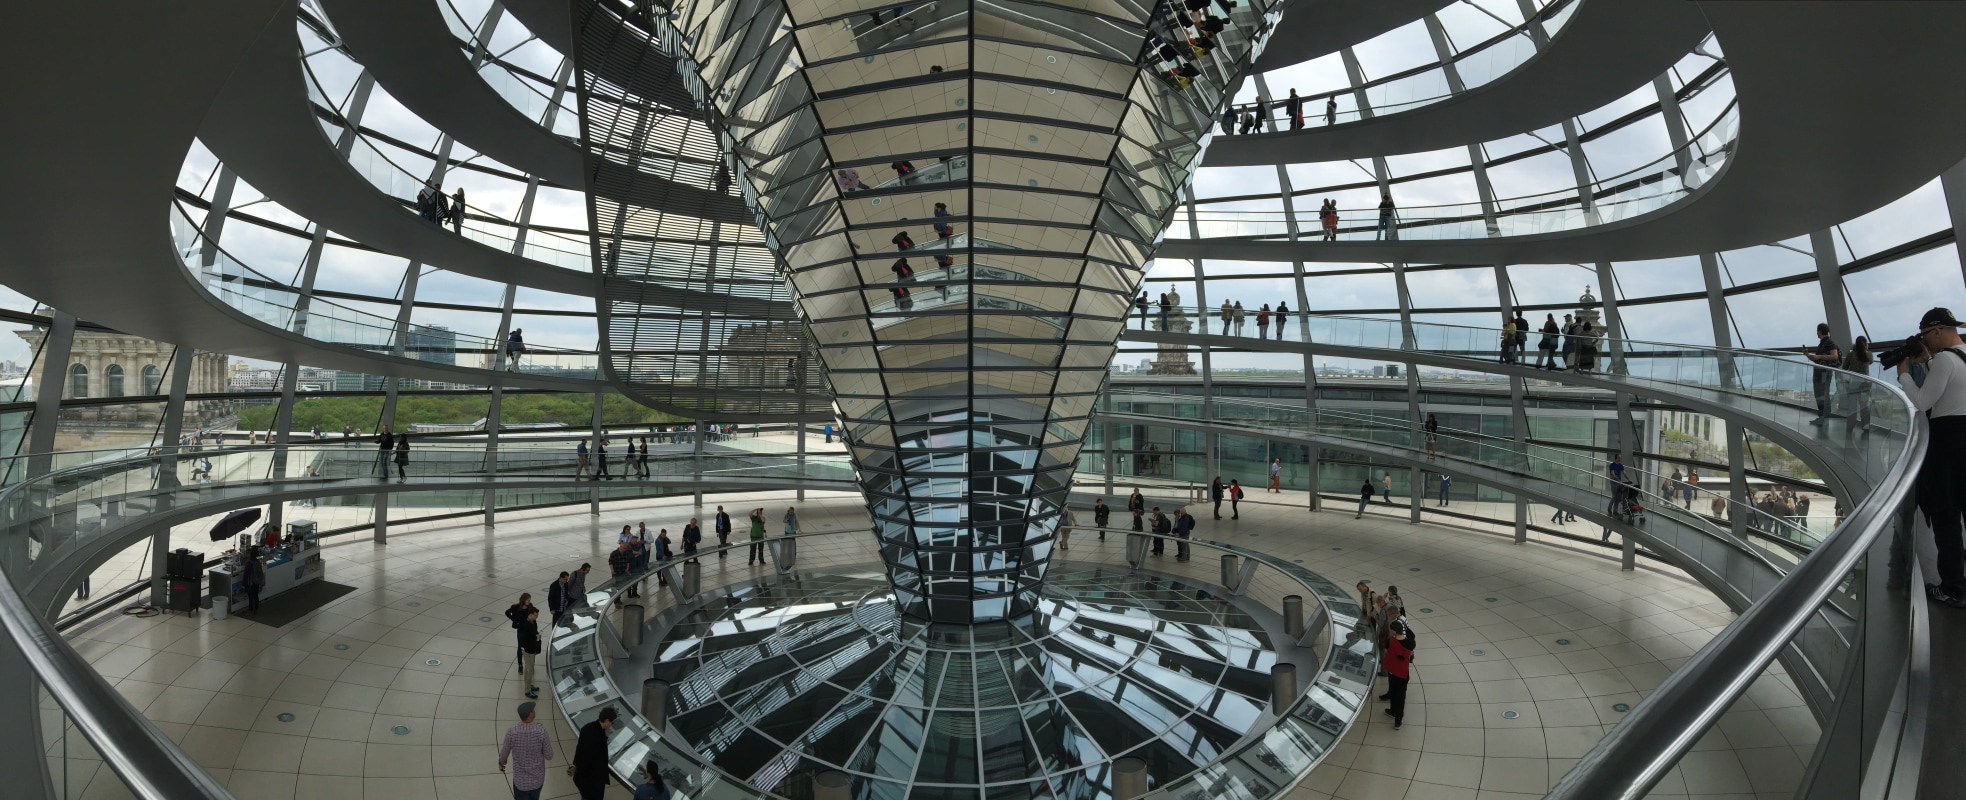 The Reichstag by Foster+Partners